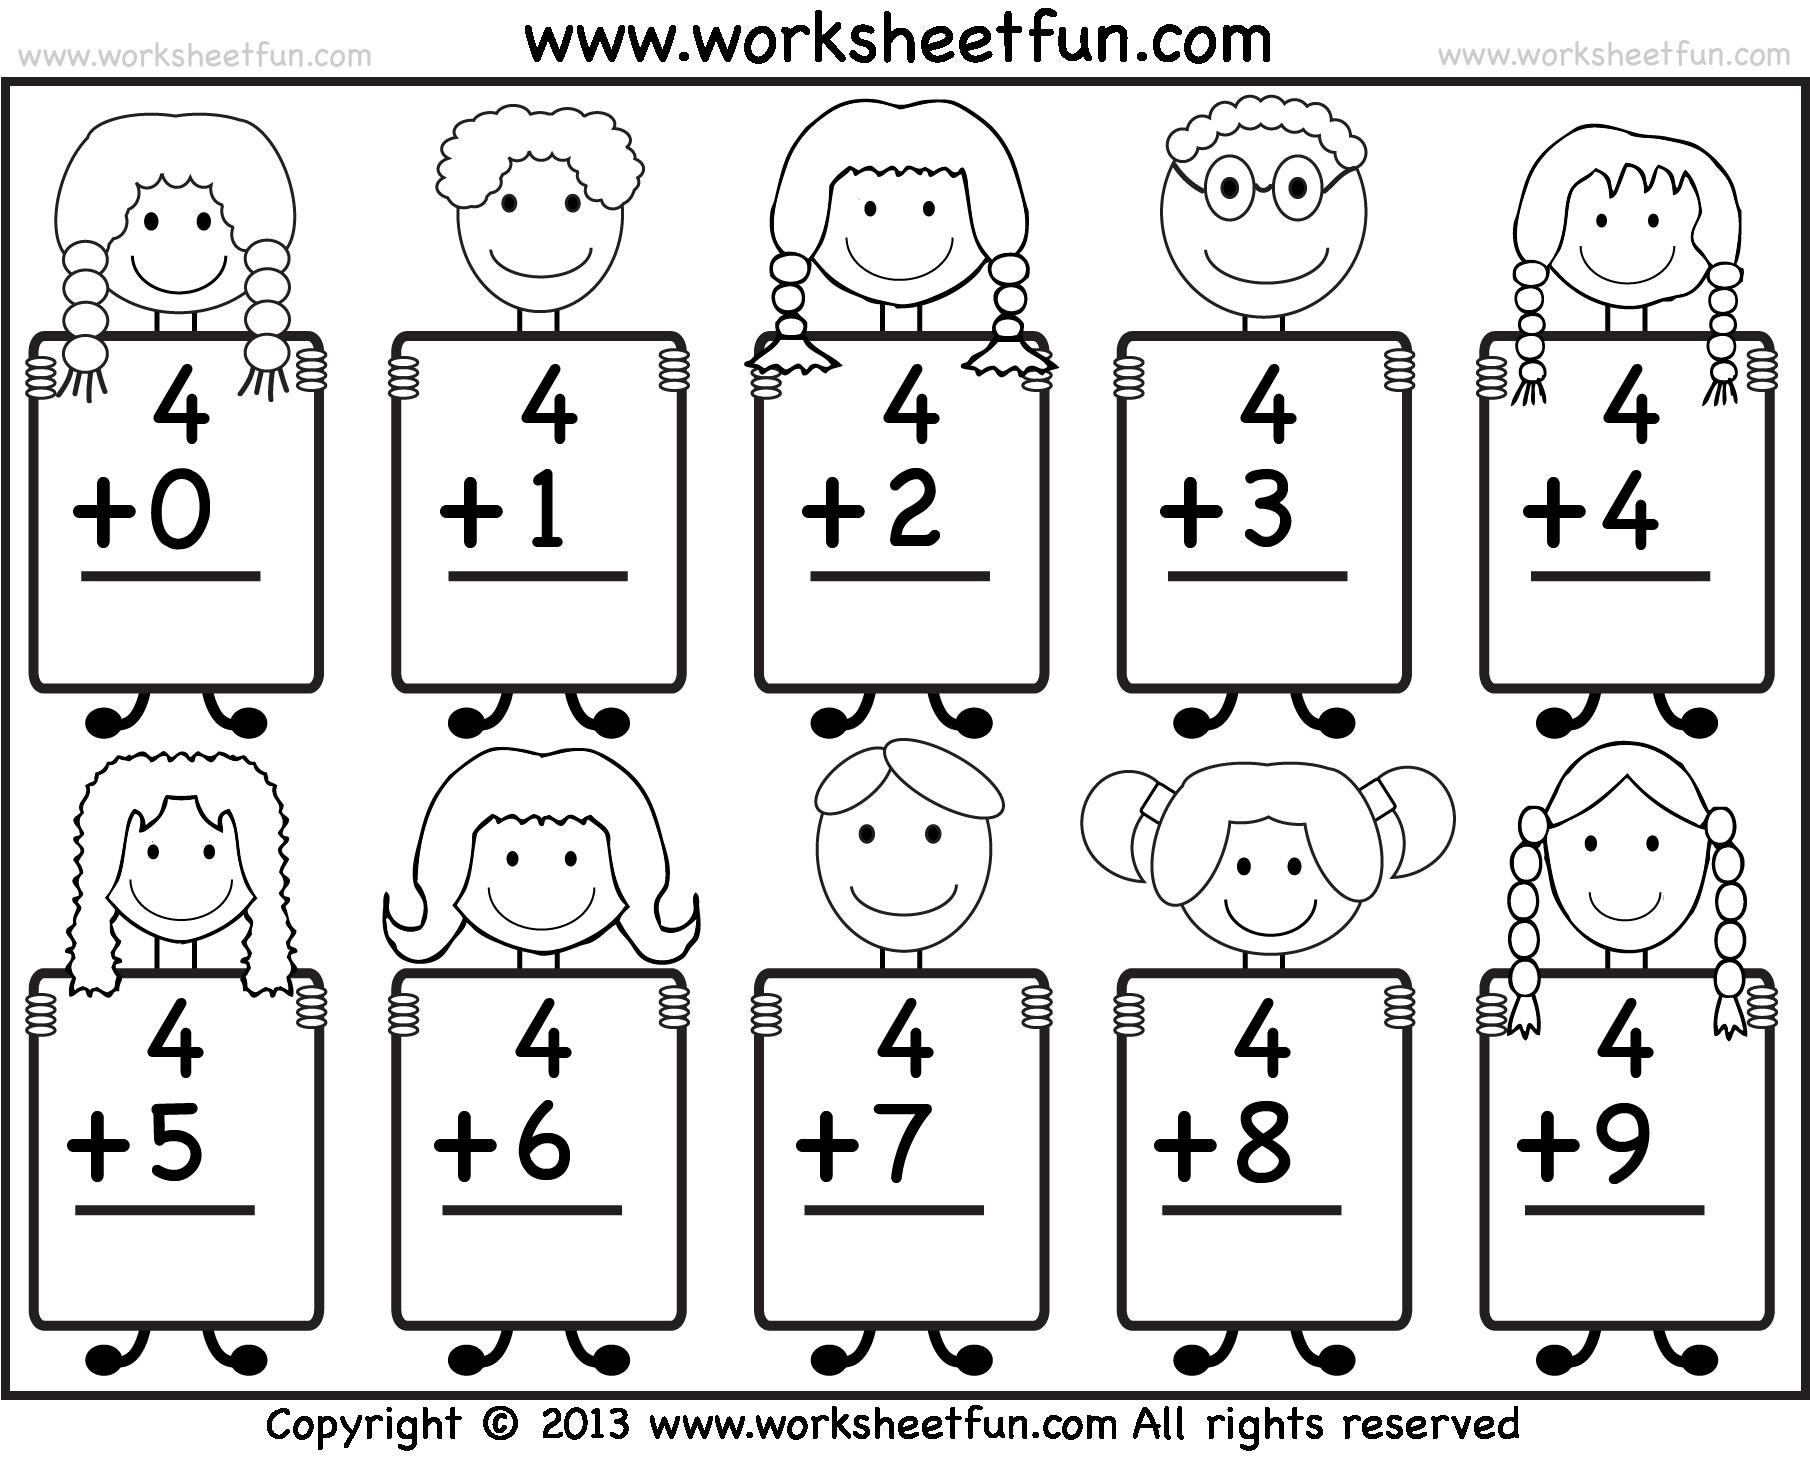 freeprintablemathworksheetsforkindergartenaddition1png – Maths Worksheet for Kindergarten Printables